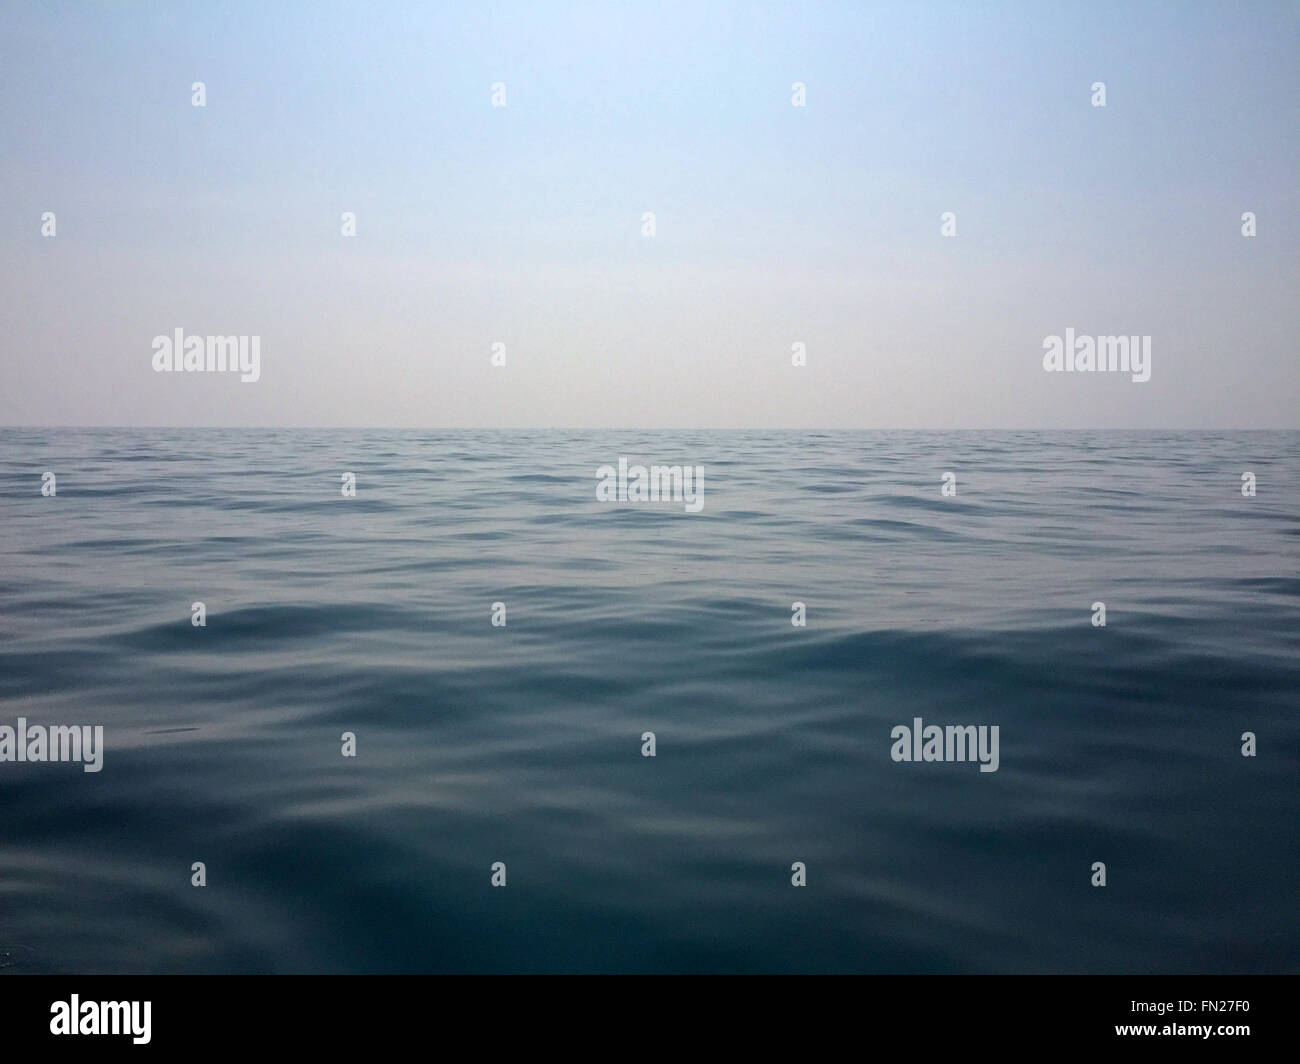 A serene view of the sea and horizon. Calm surface. - Stock Image